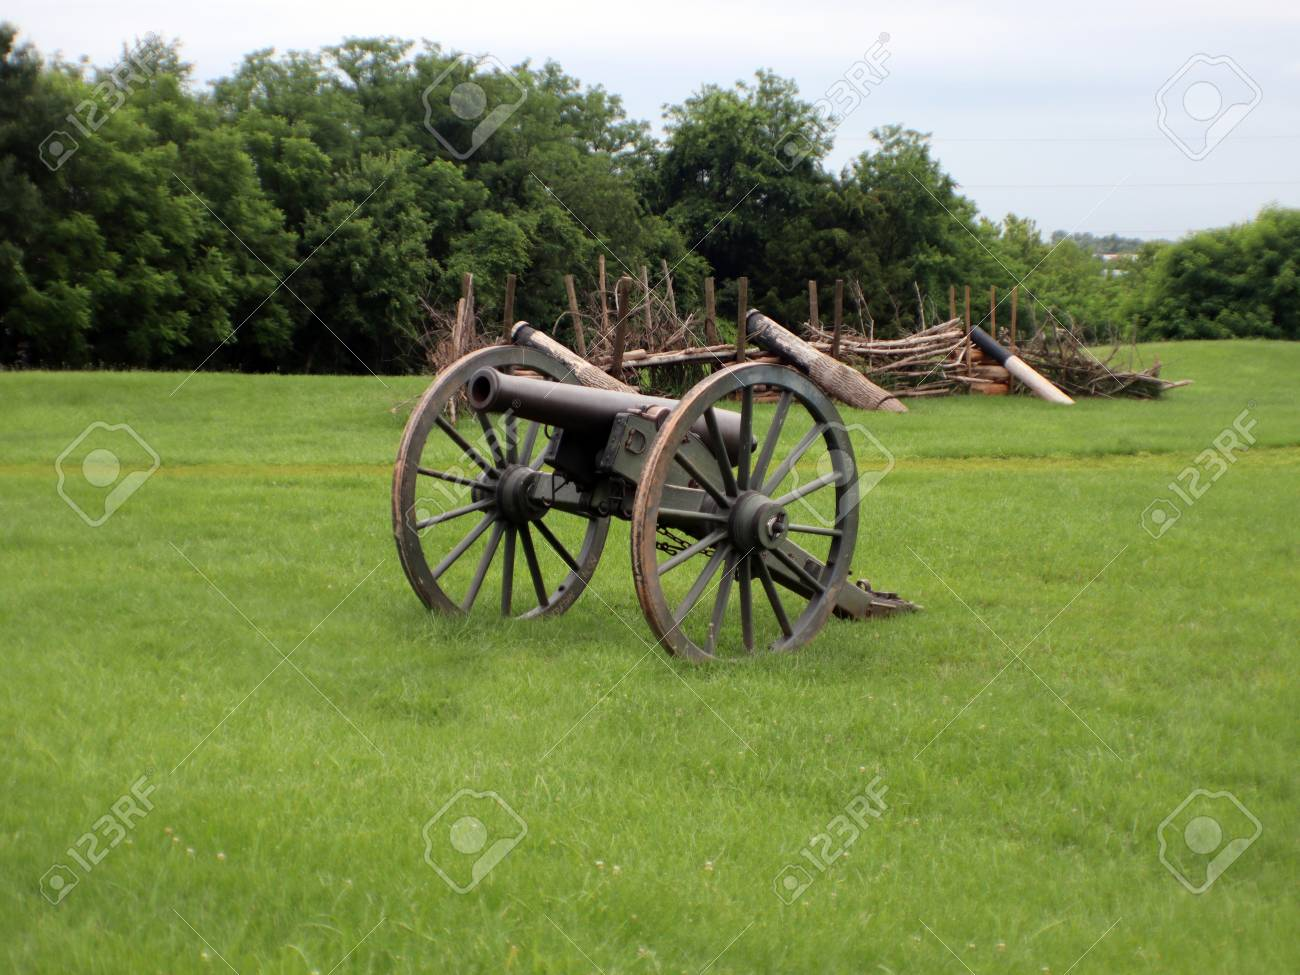 A Civil War Cannon With A Log Wall In The Background Stock Photo 1300x975